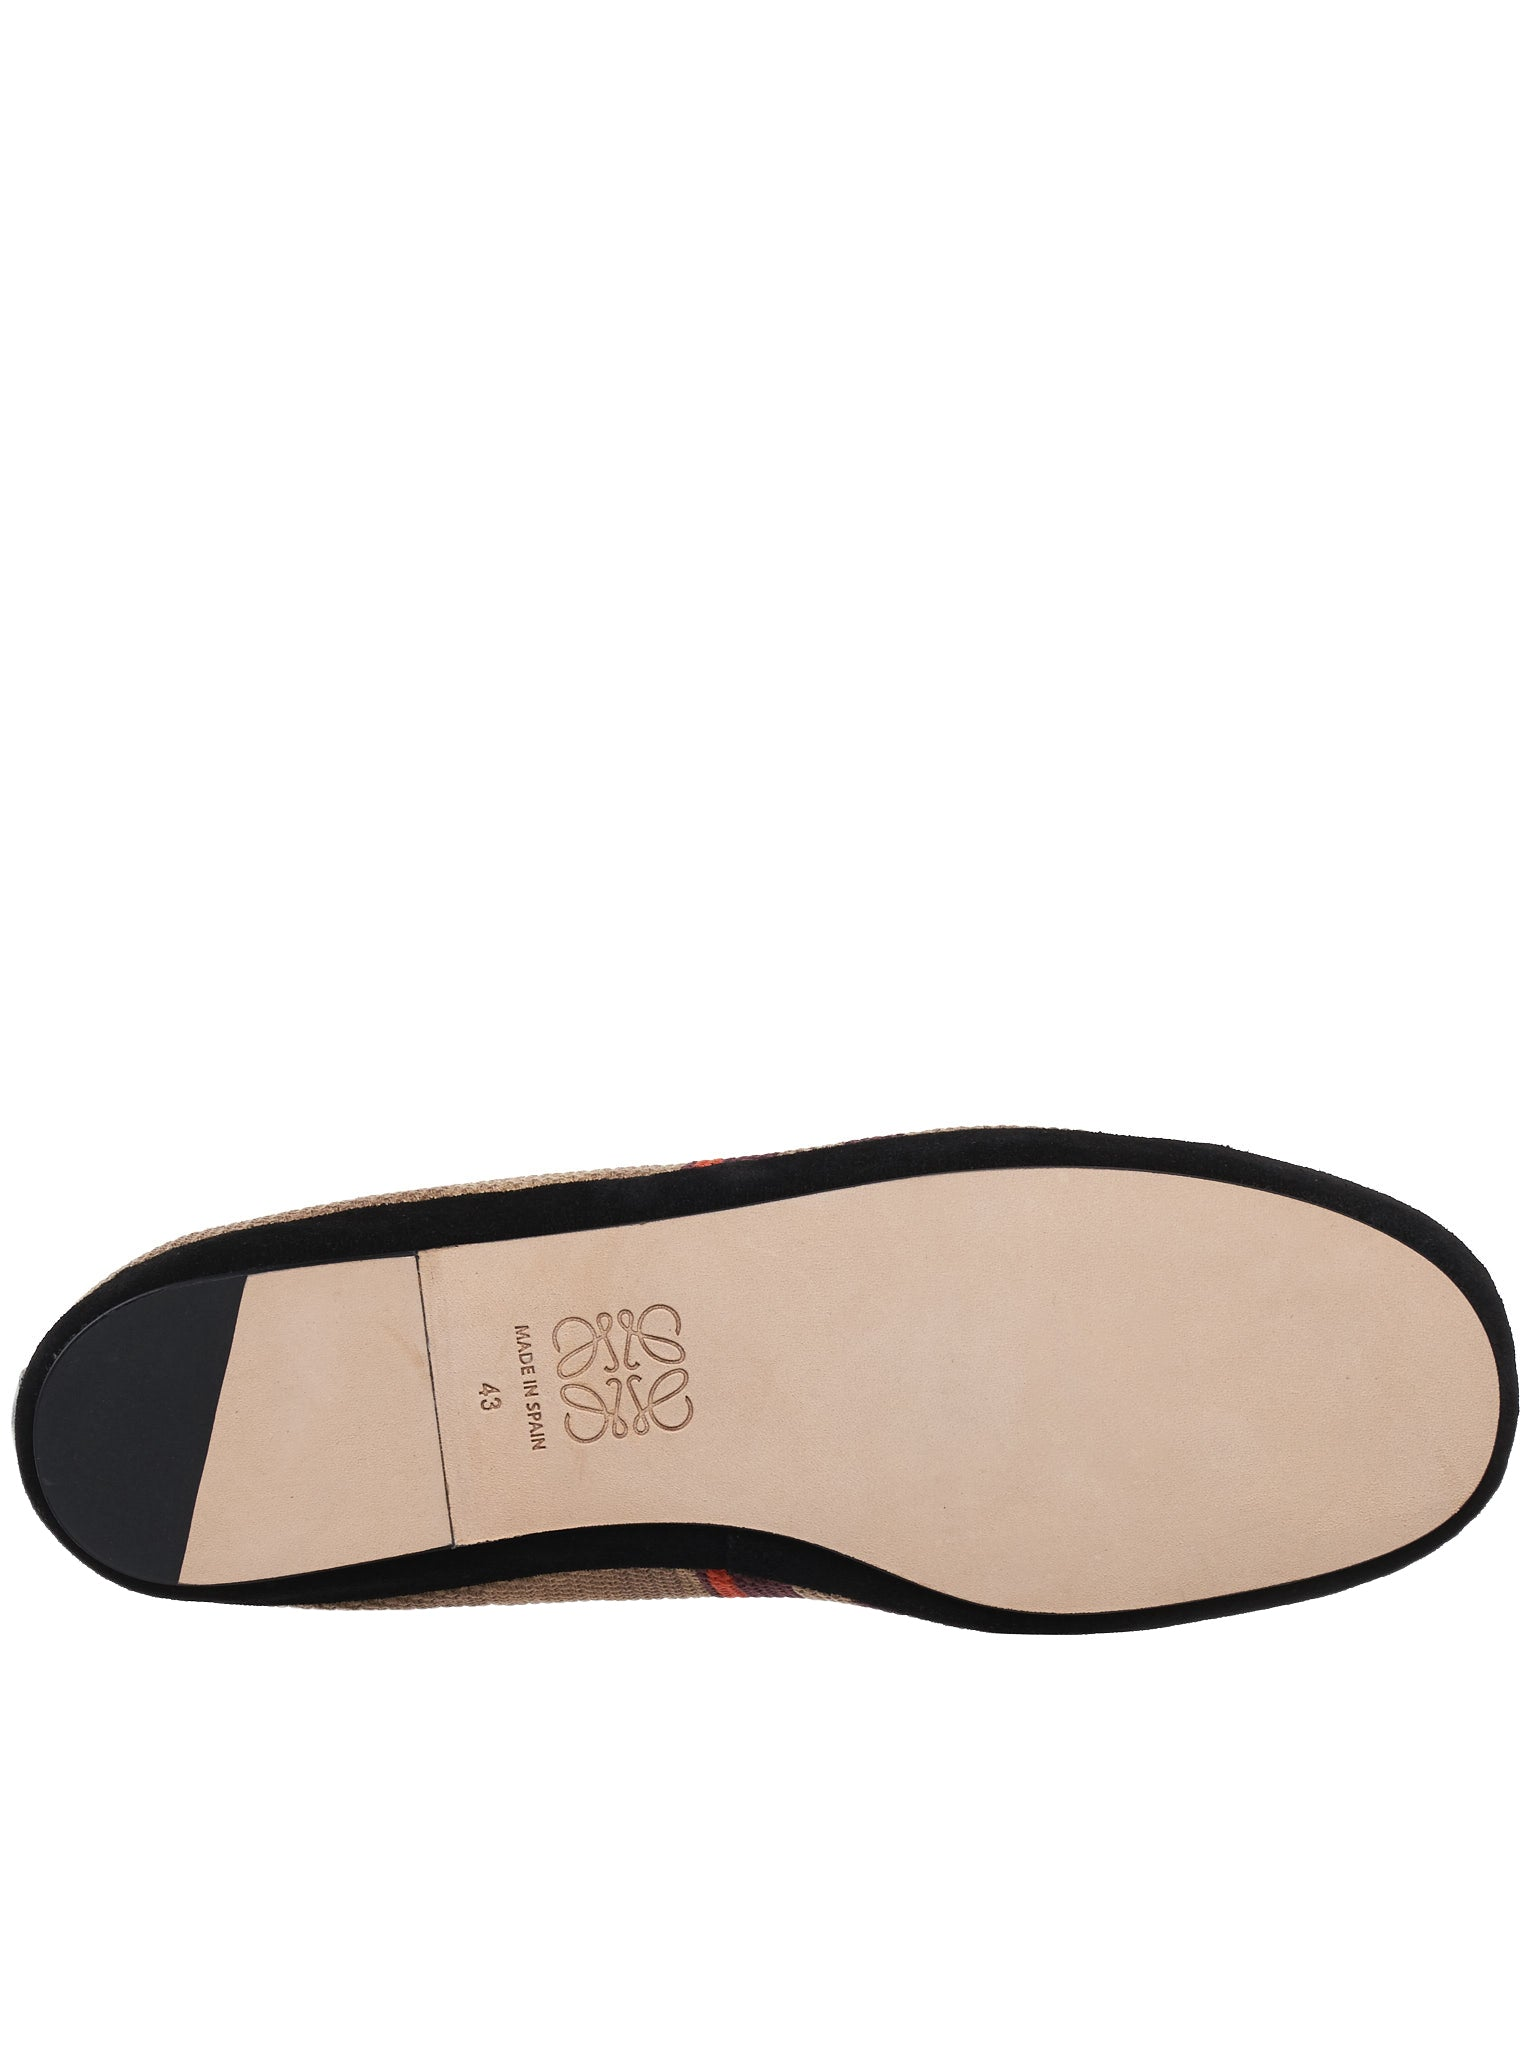 Dedos Verde Slippers (453-10-514-SAND-BROWN)